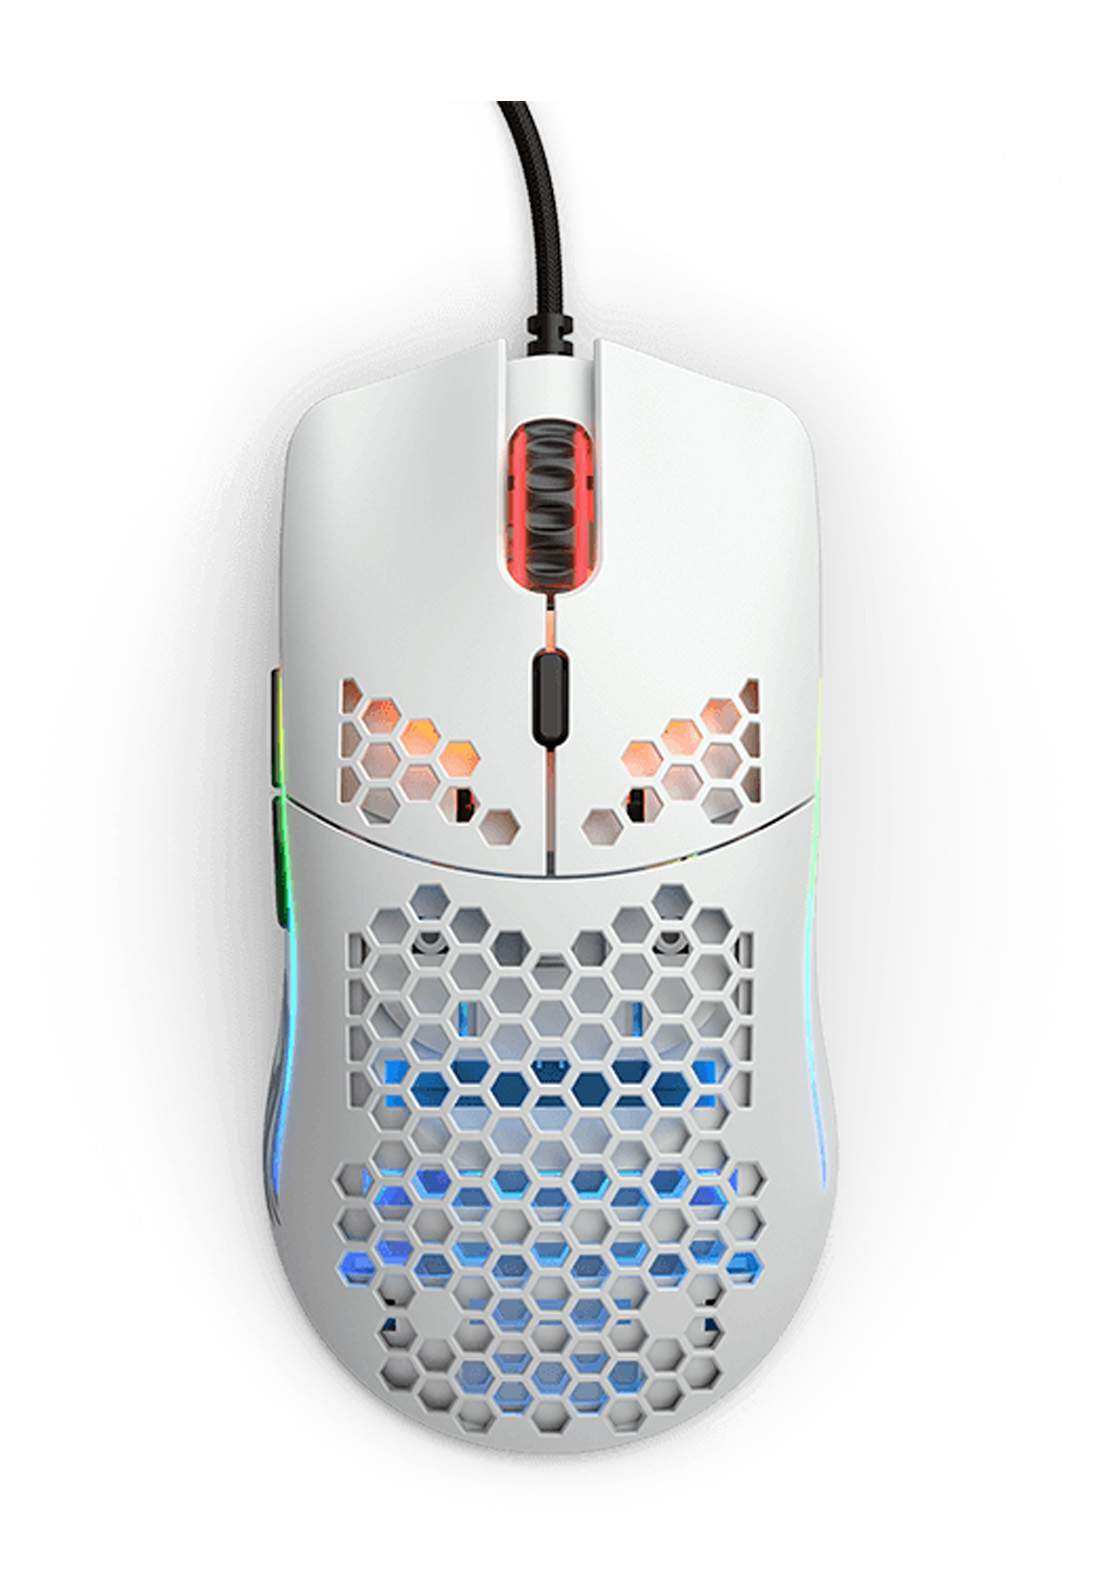 Glorious Model O- Matte Gaming Mouse - White  ماوس